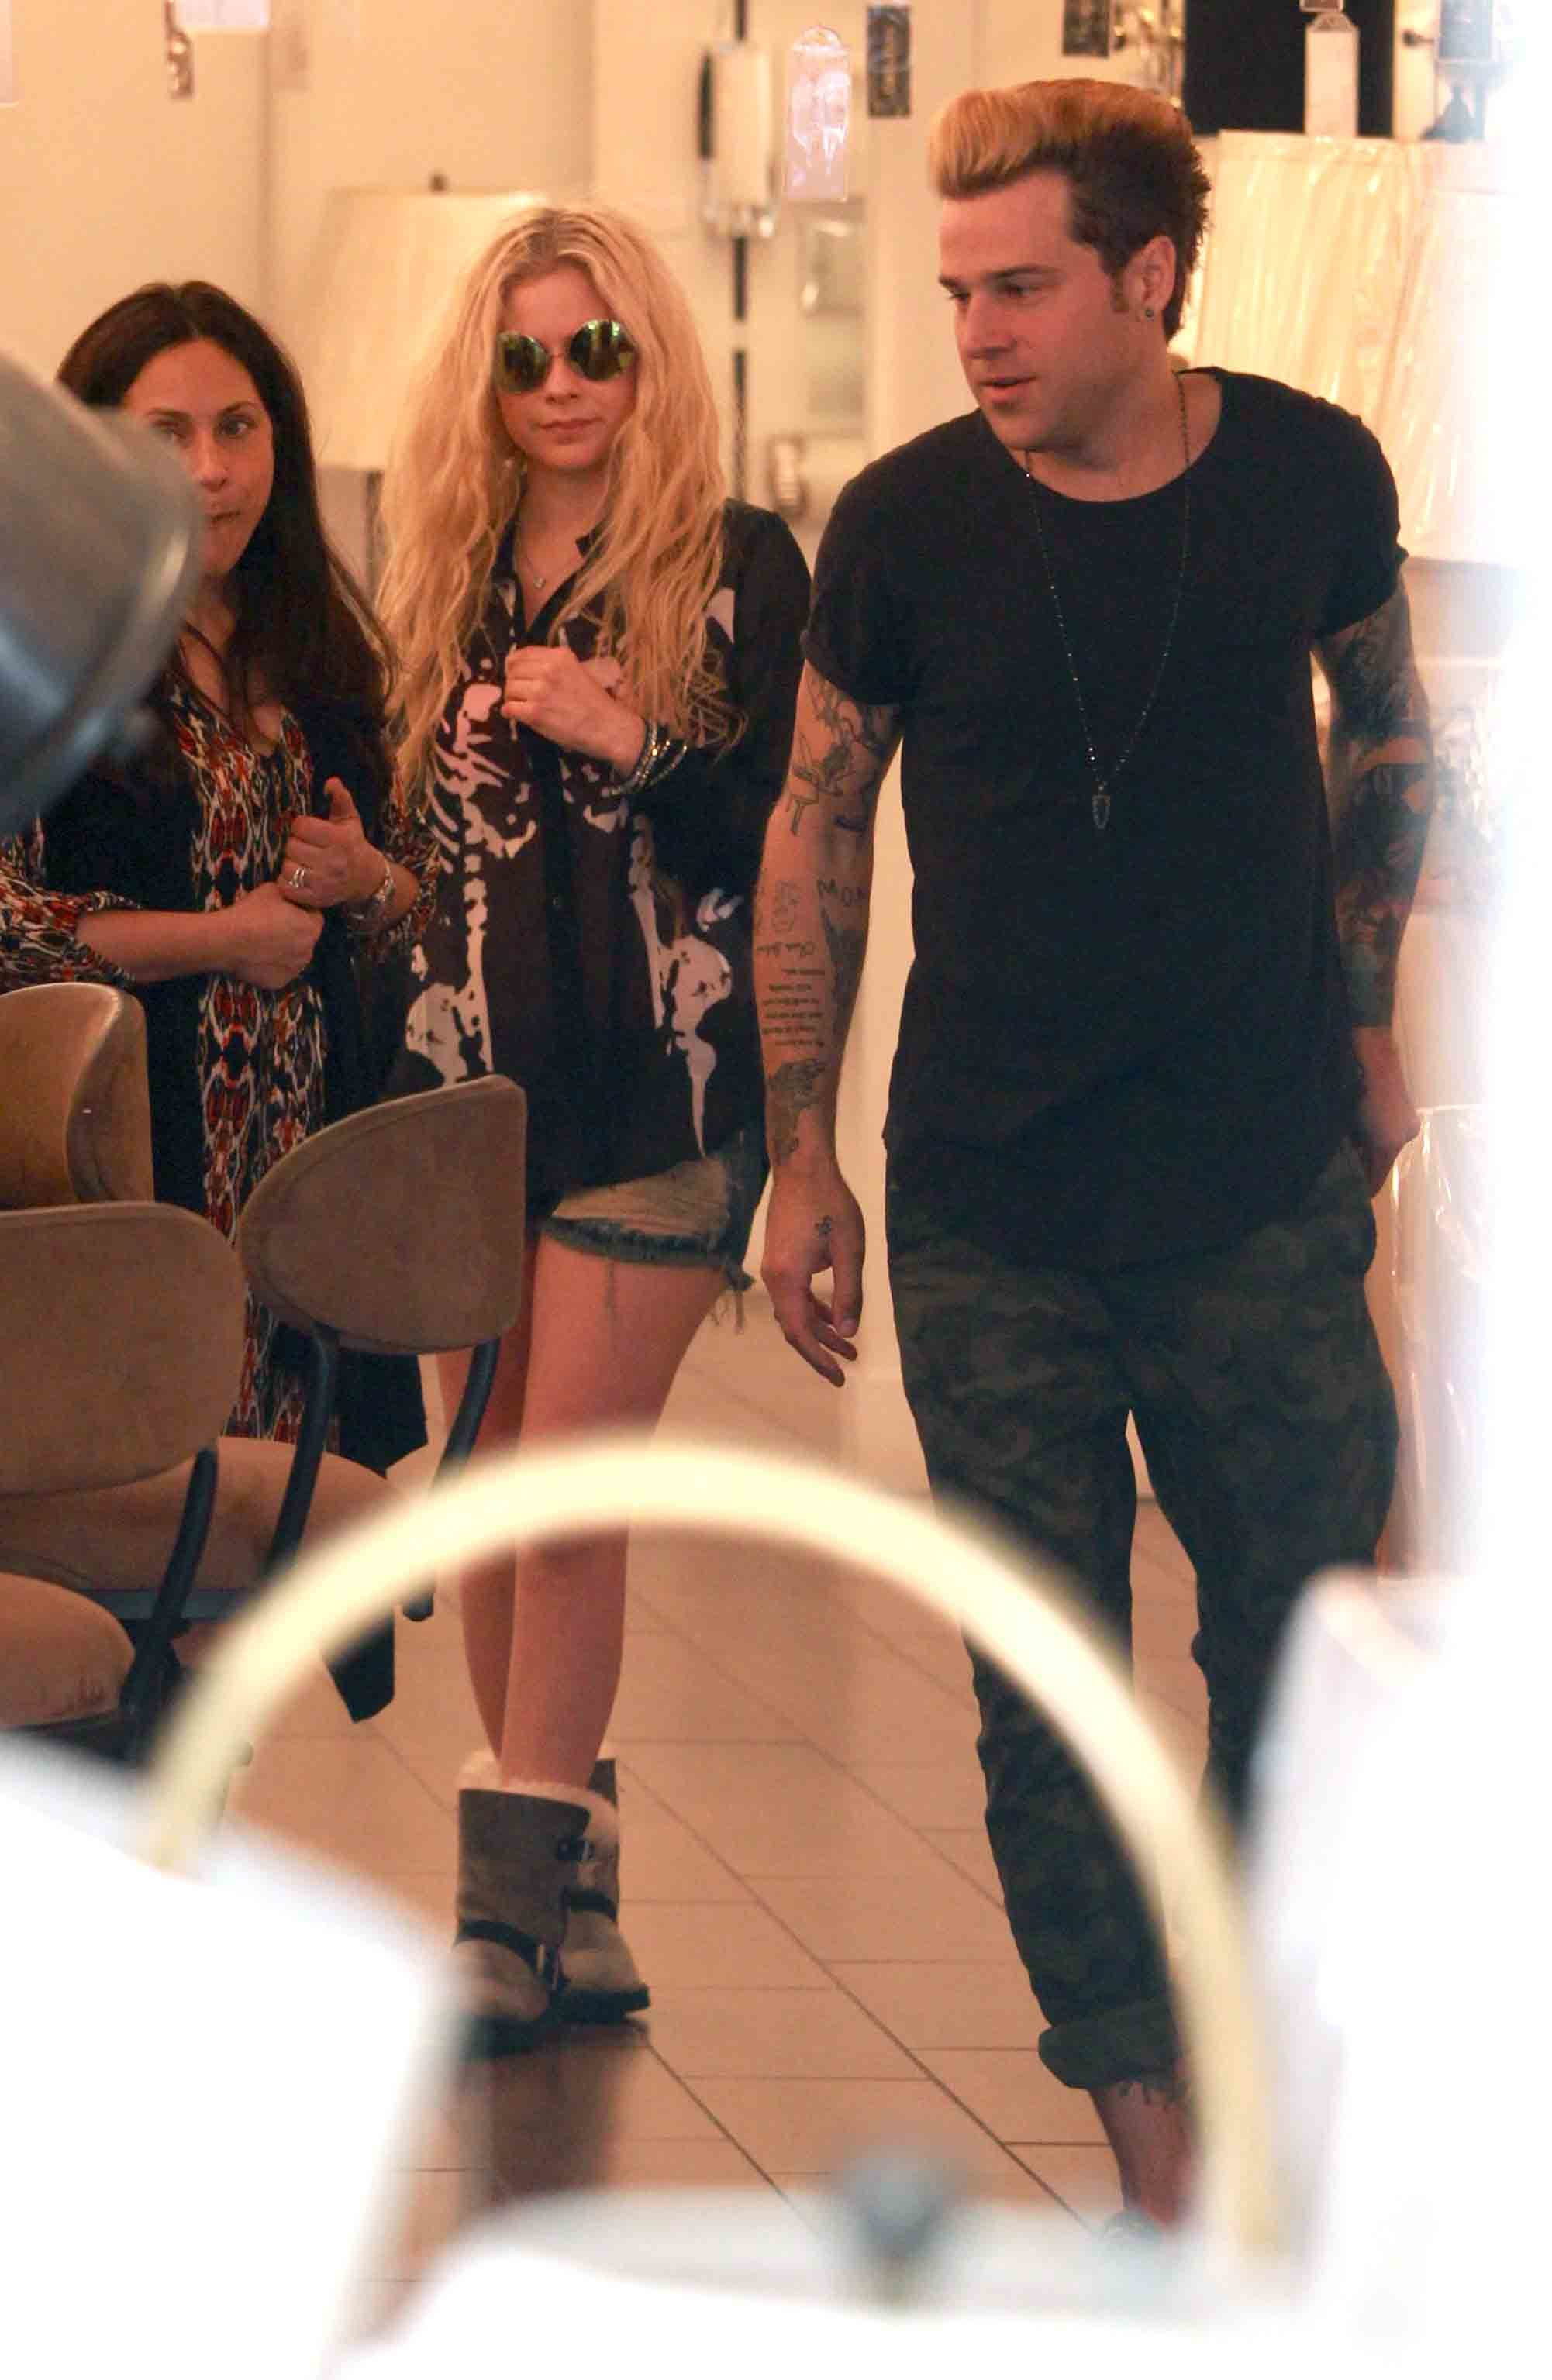 Date night for Avril Lavigne and Ryan Cabrera?